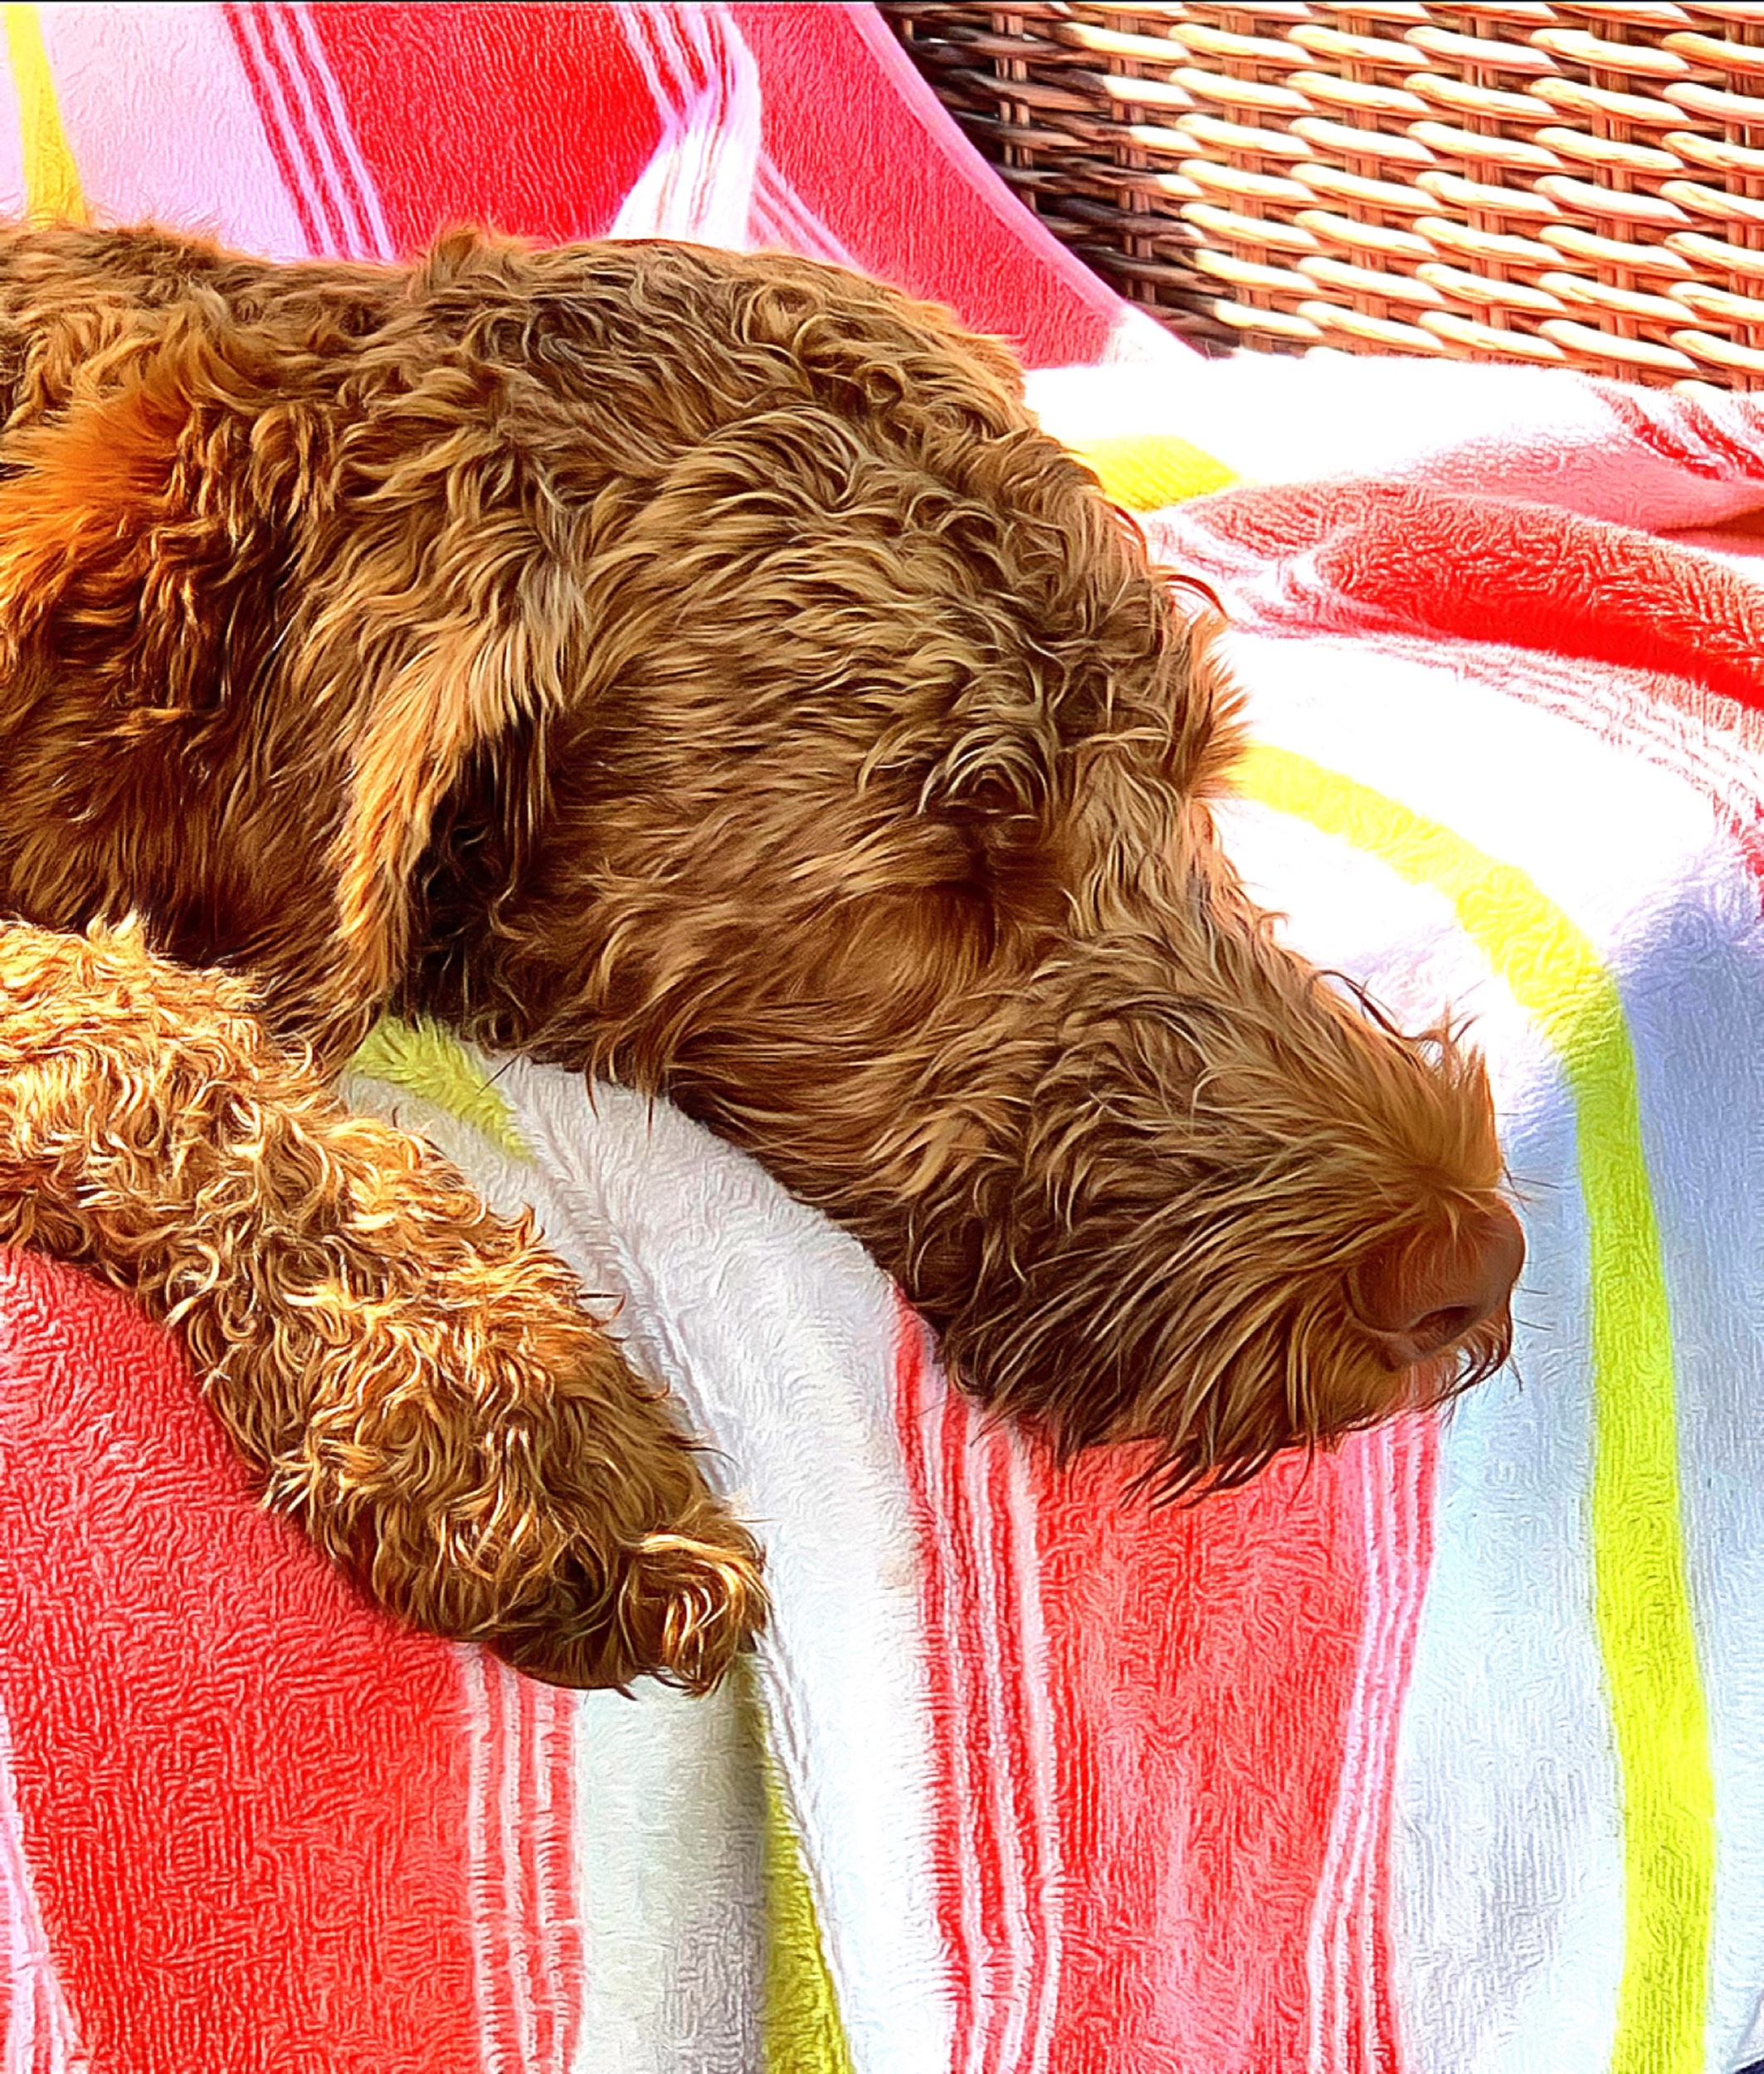 August 7, 2019 - Little KerrBee takes a well-deserved rest in the sun after a very active play & swim session!